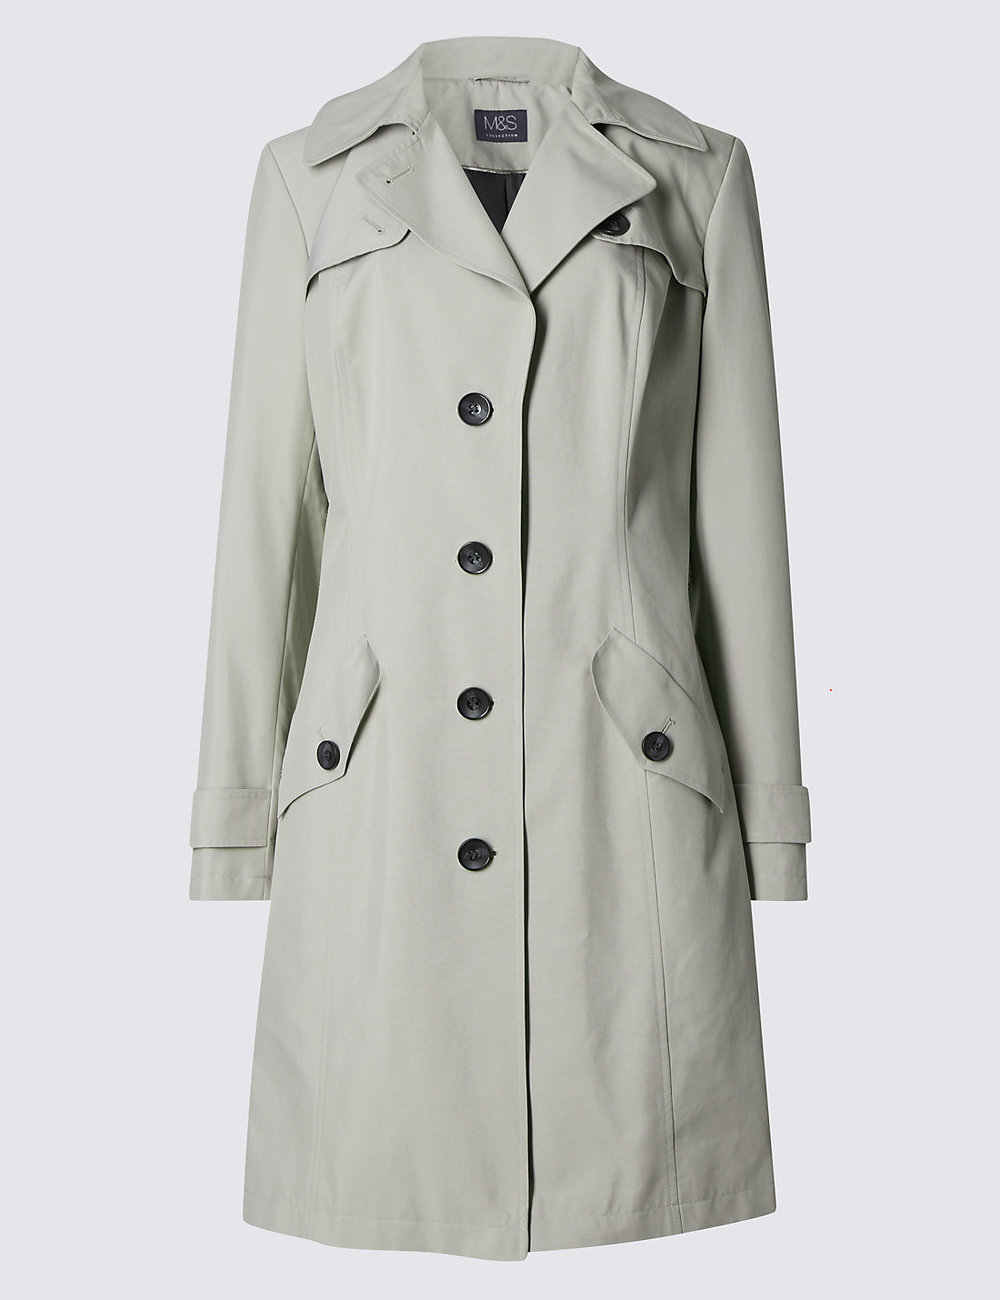 Marks and Spencer trench jacket from marksandspencer.com